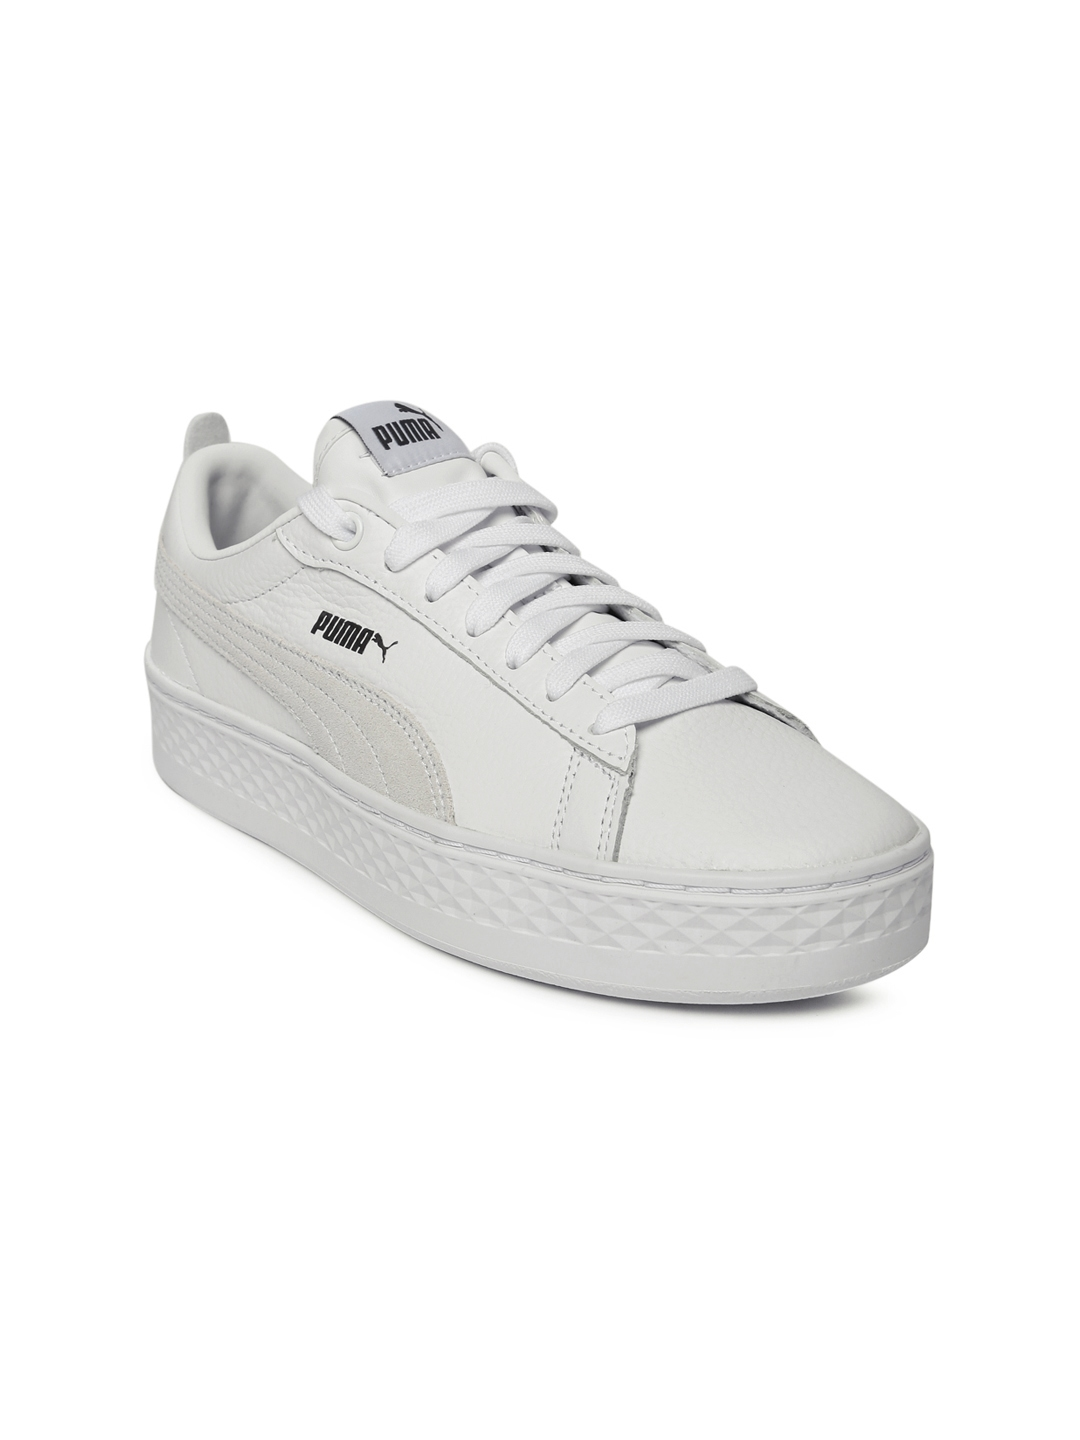 518a86be005ef3 Buy Puma Women White Smash Platform Sneakers - Casual Shoes for ...